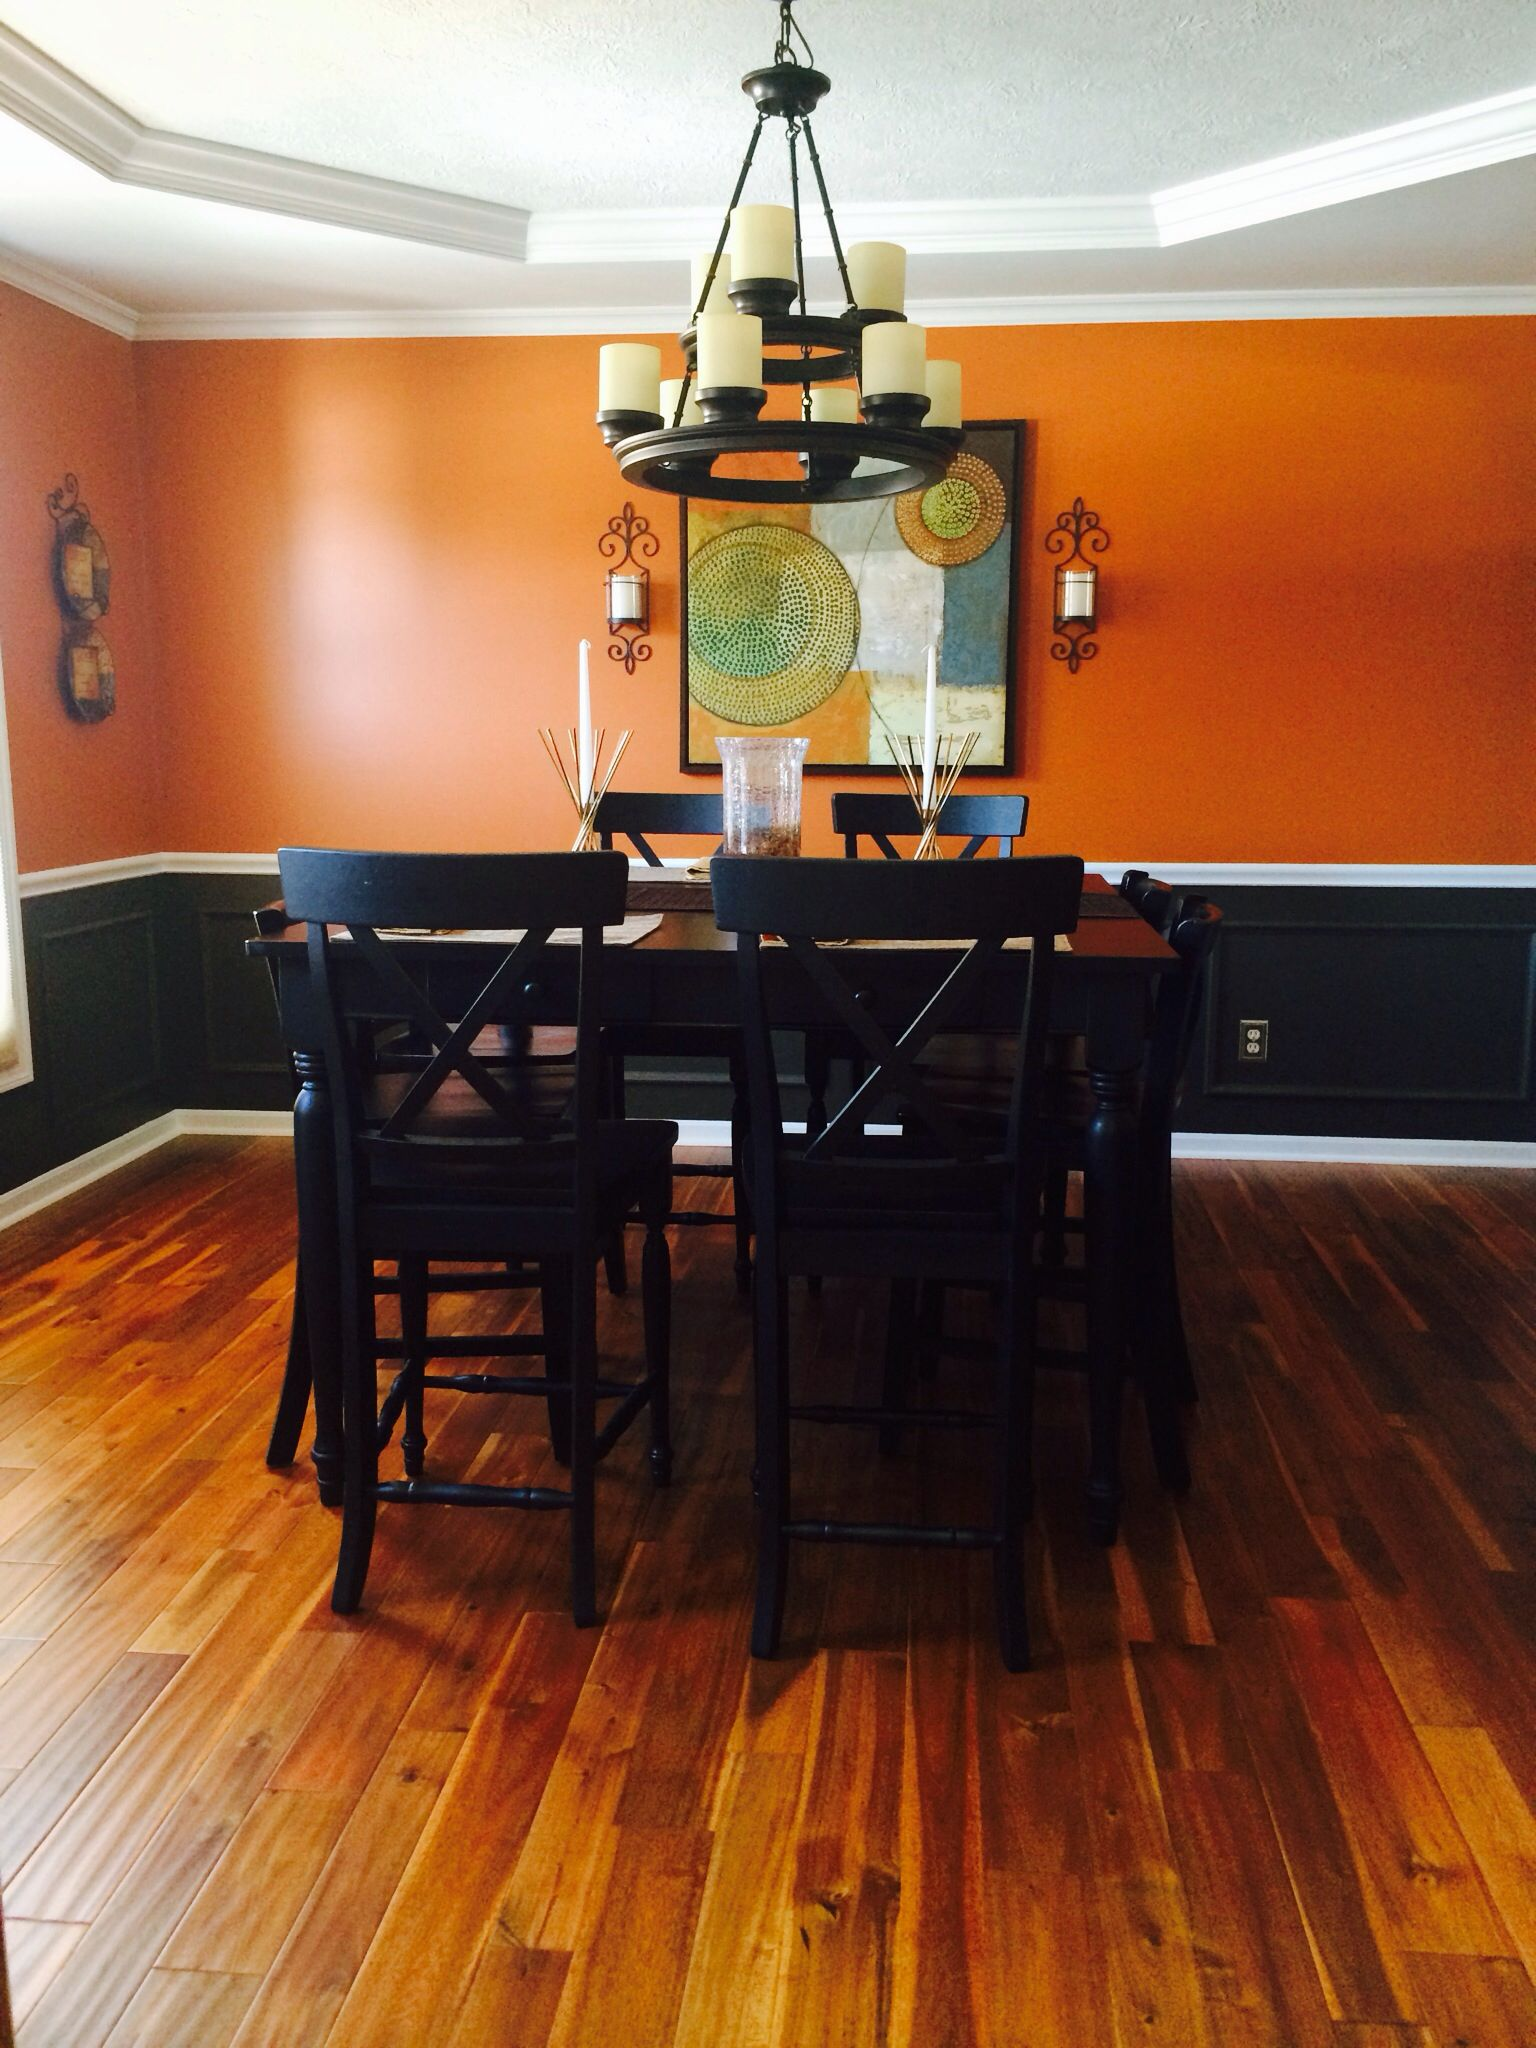 Paint Colors Sherwin Williams Urbane Bronze And Earthen Jug Flooring Is Natural Floors By